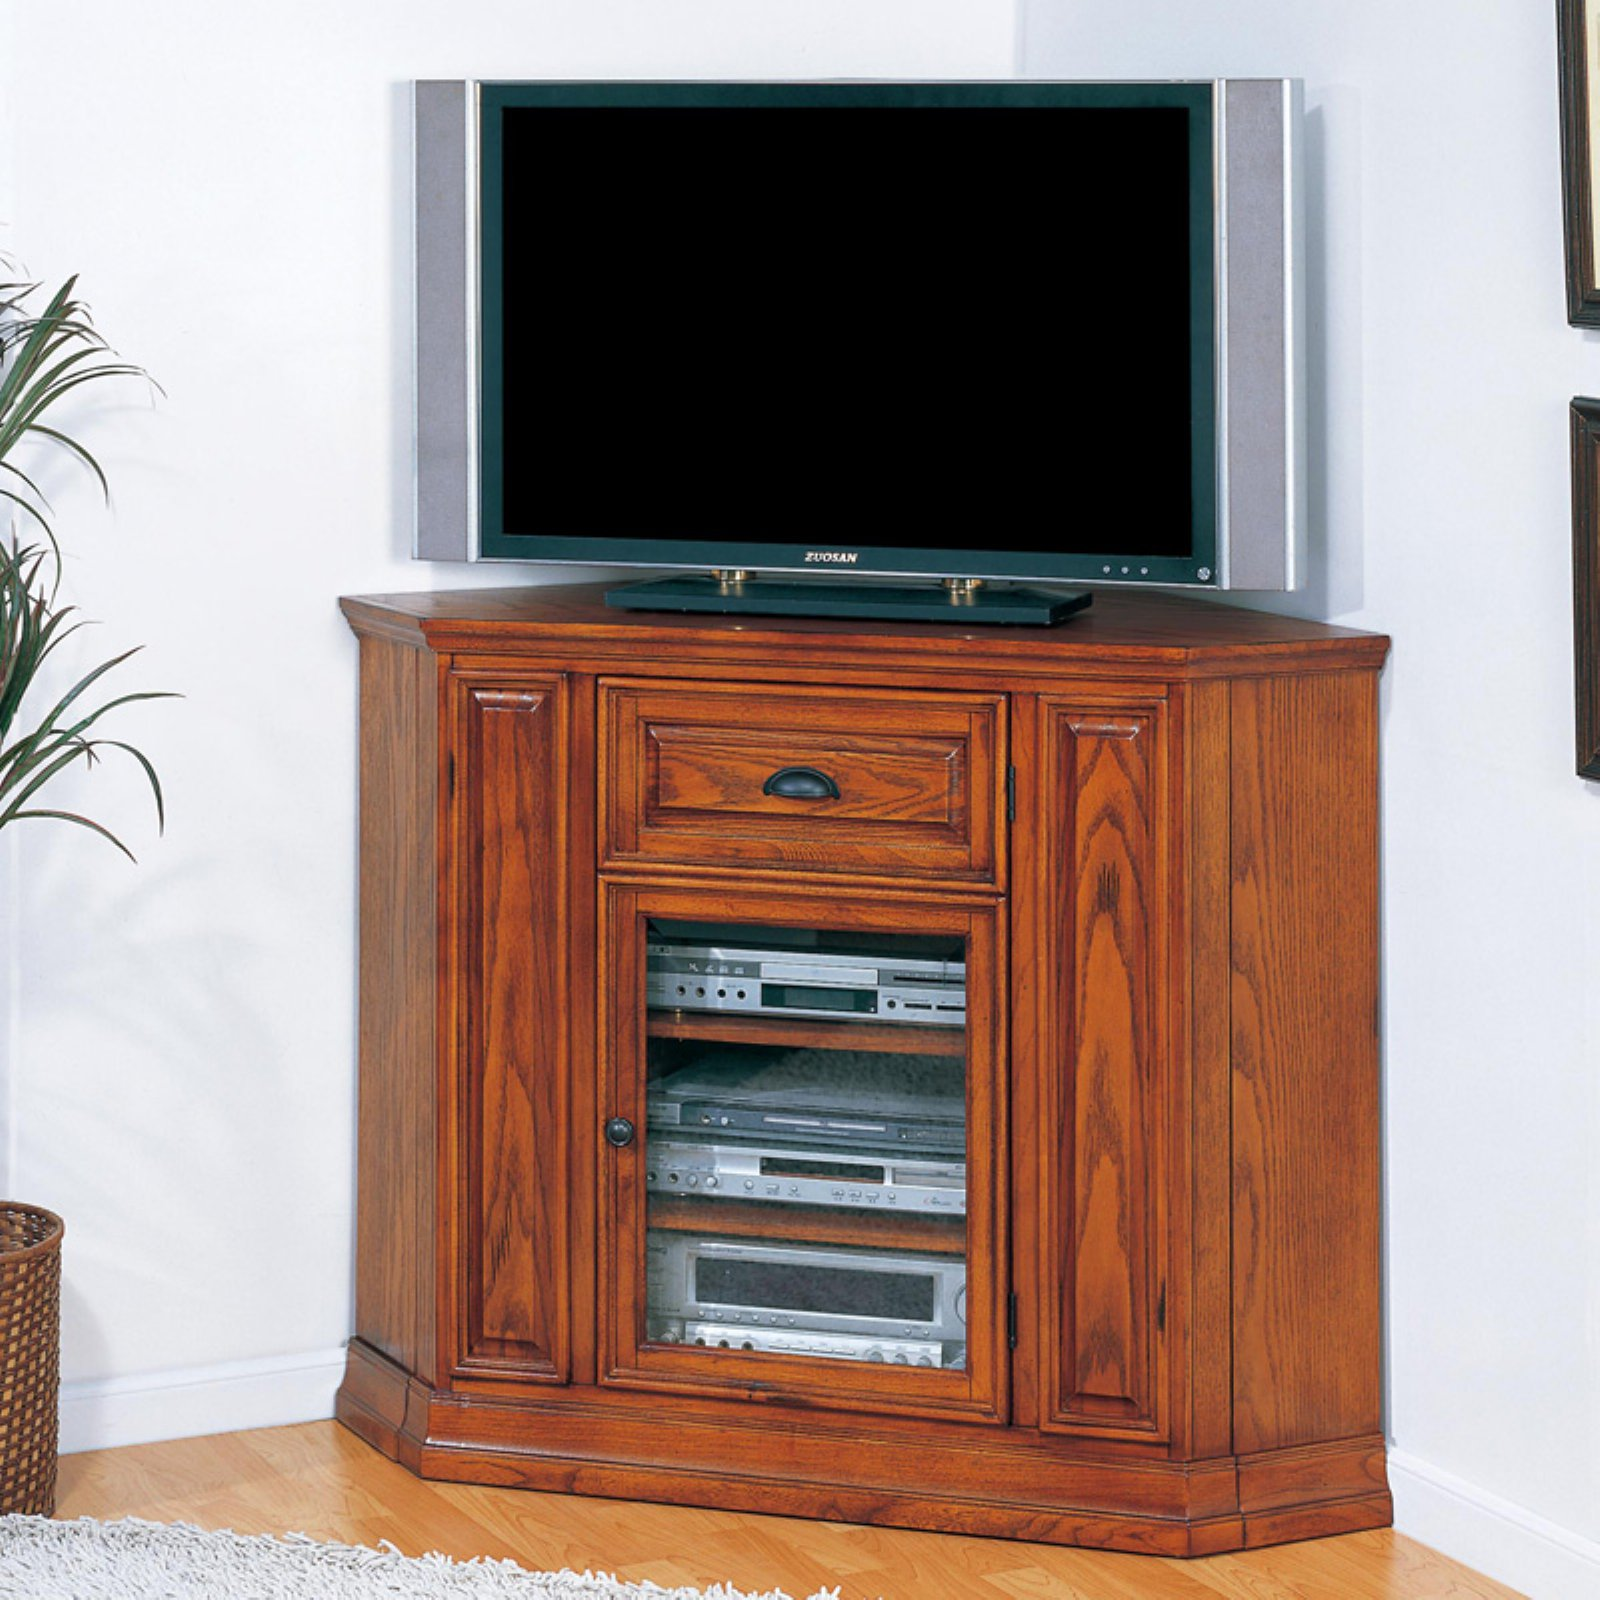 Leick 82232 Riley Holliday Boulder Creek 46 in. Corner TV Console